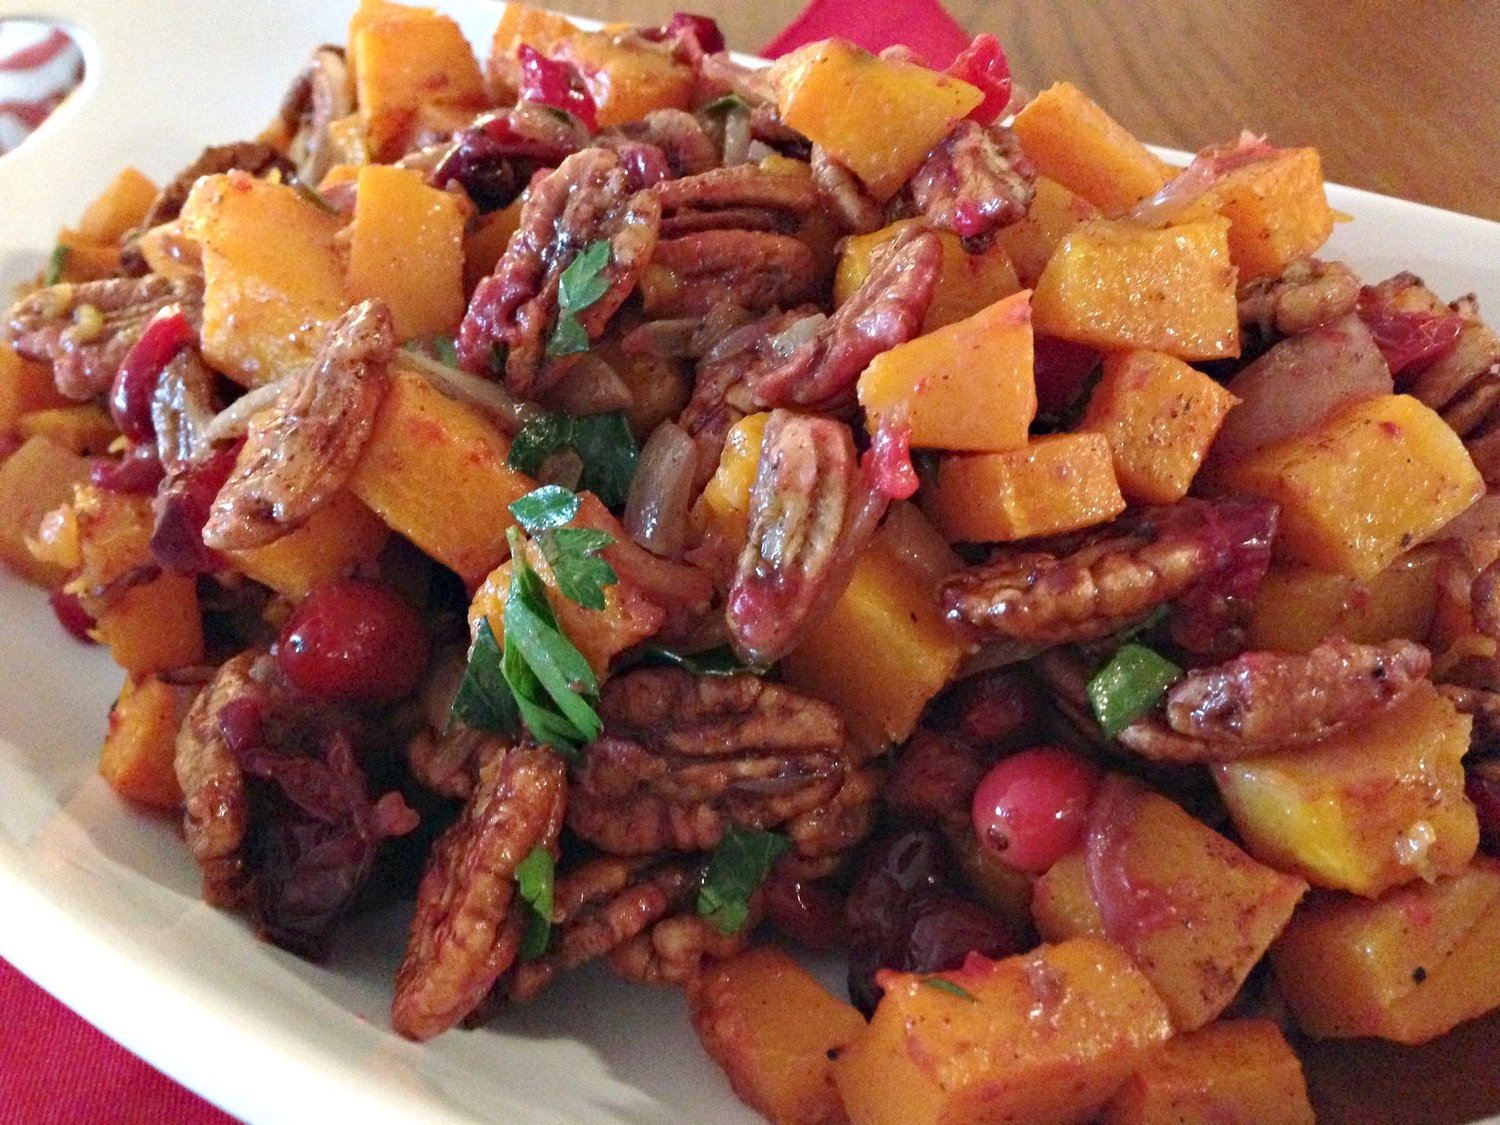 Gingered Sweet Potatoes and Squash